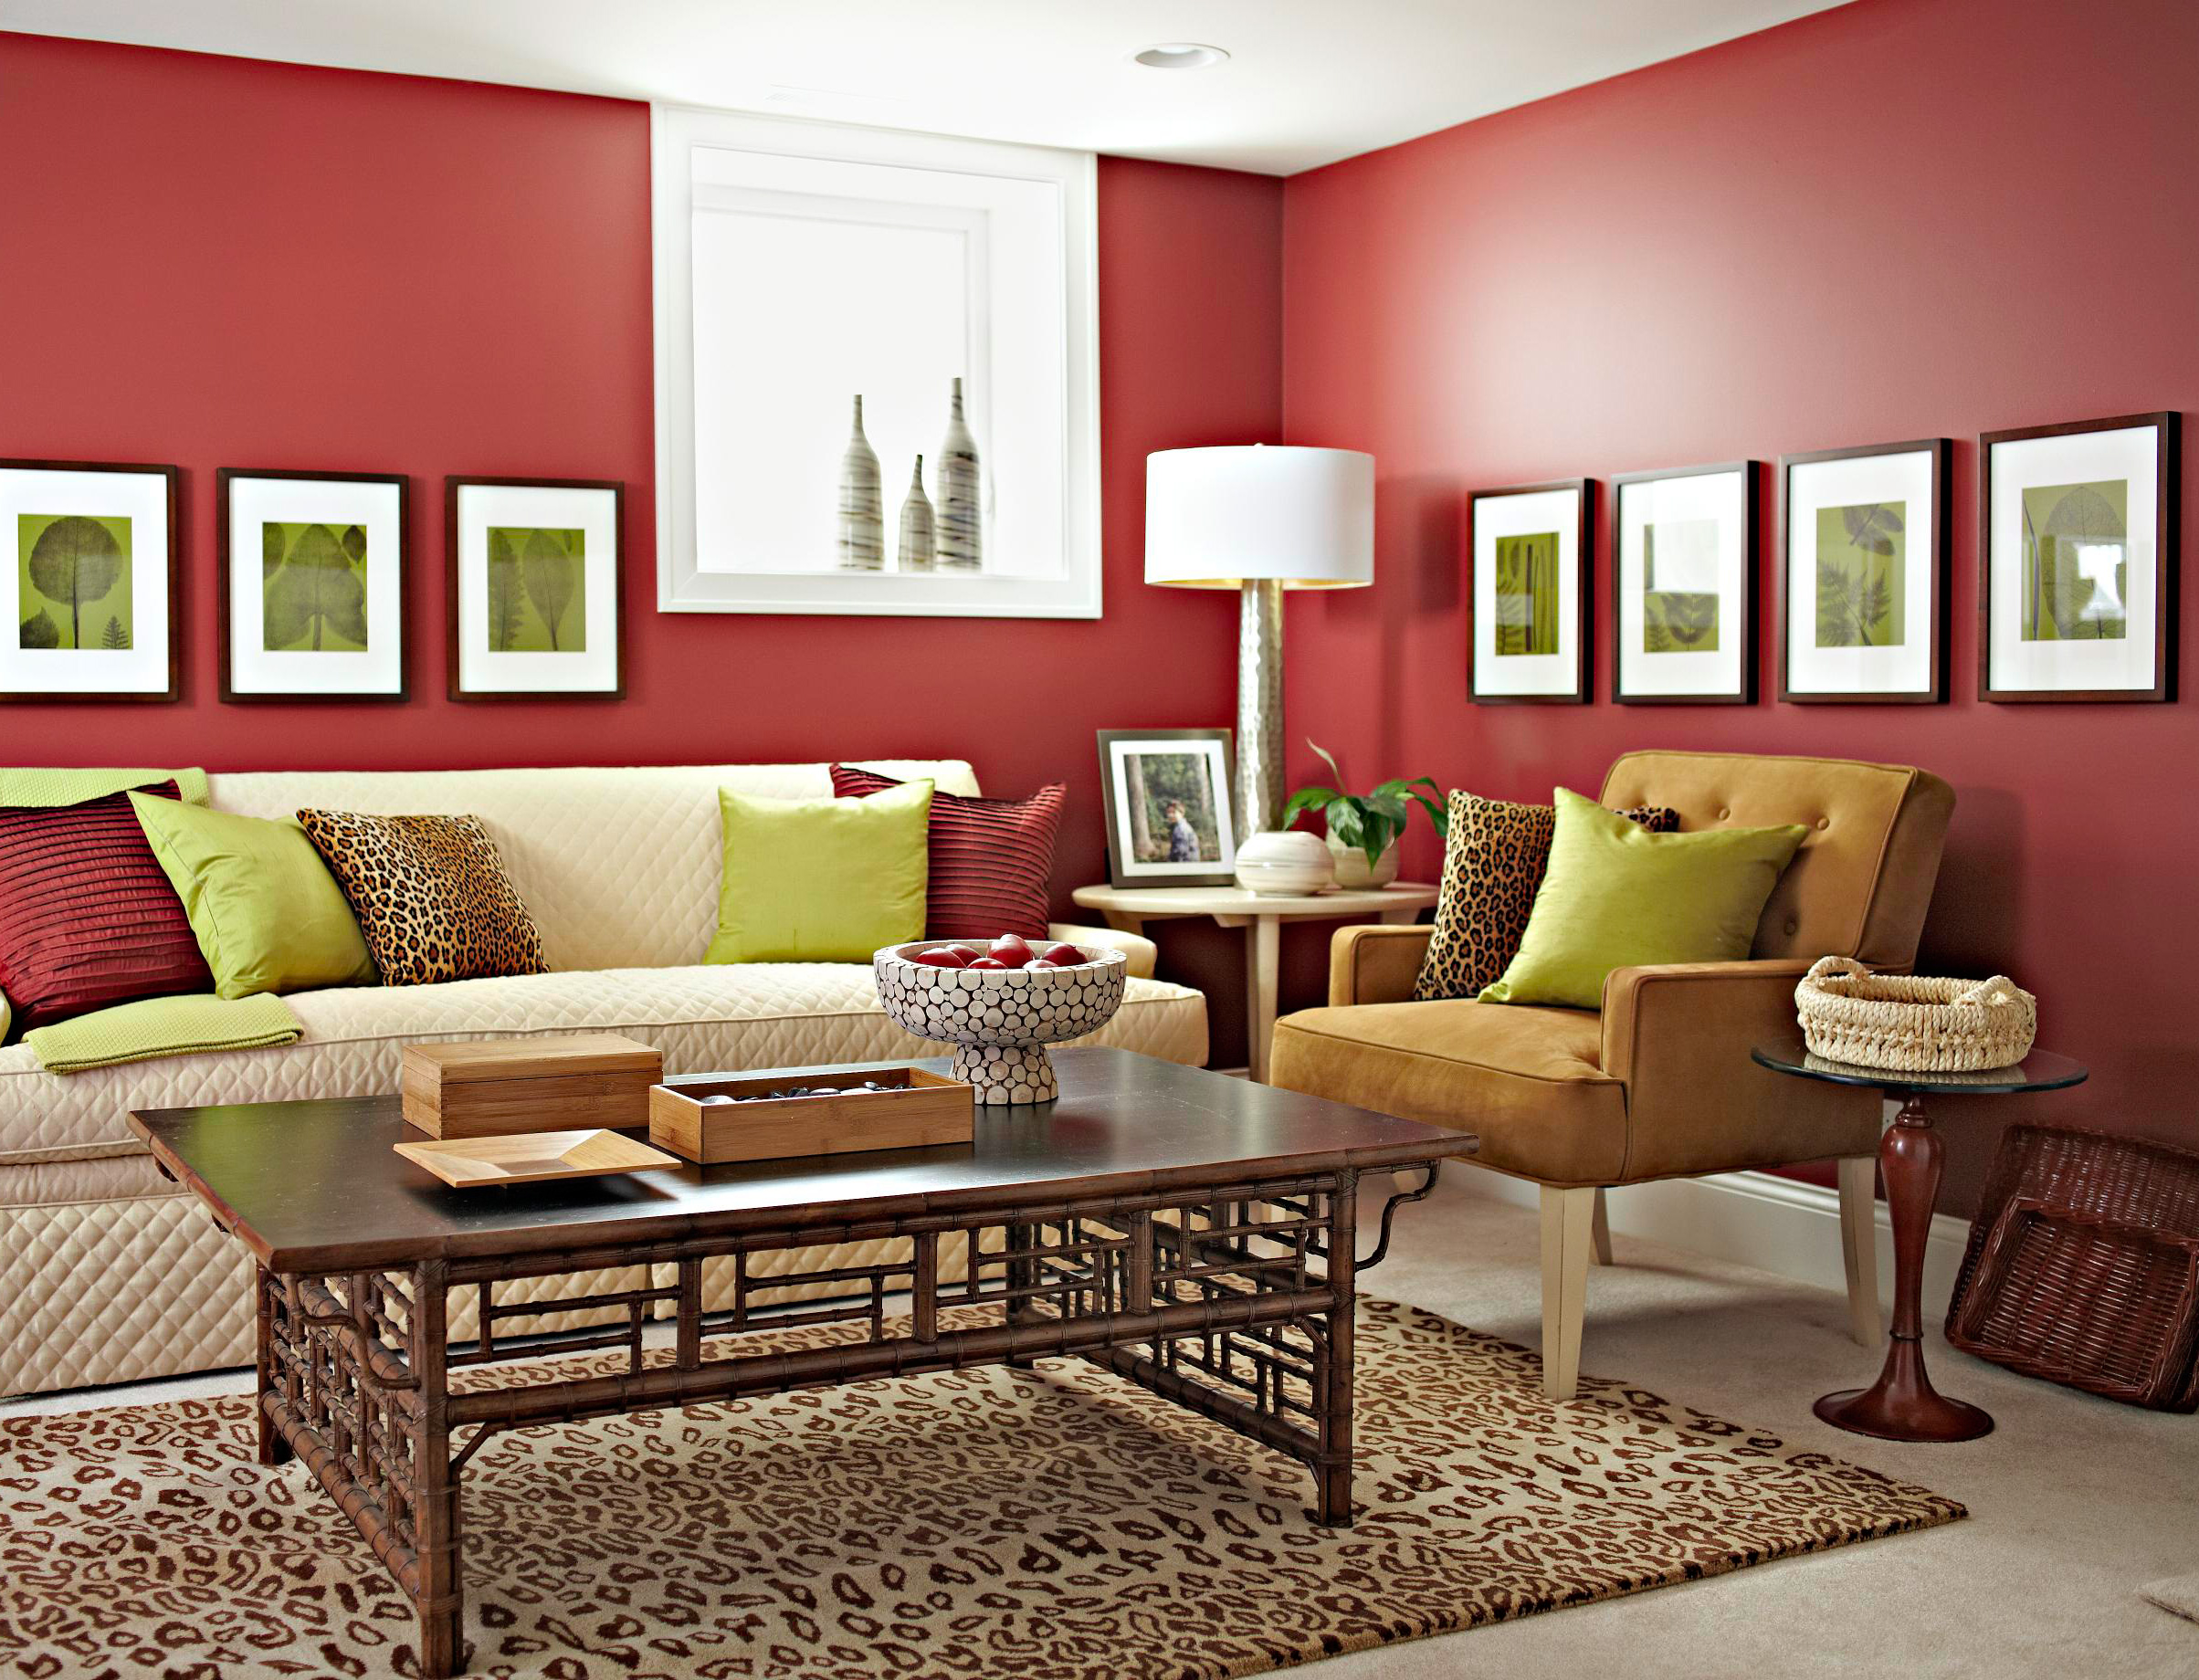 Revitalize a space